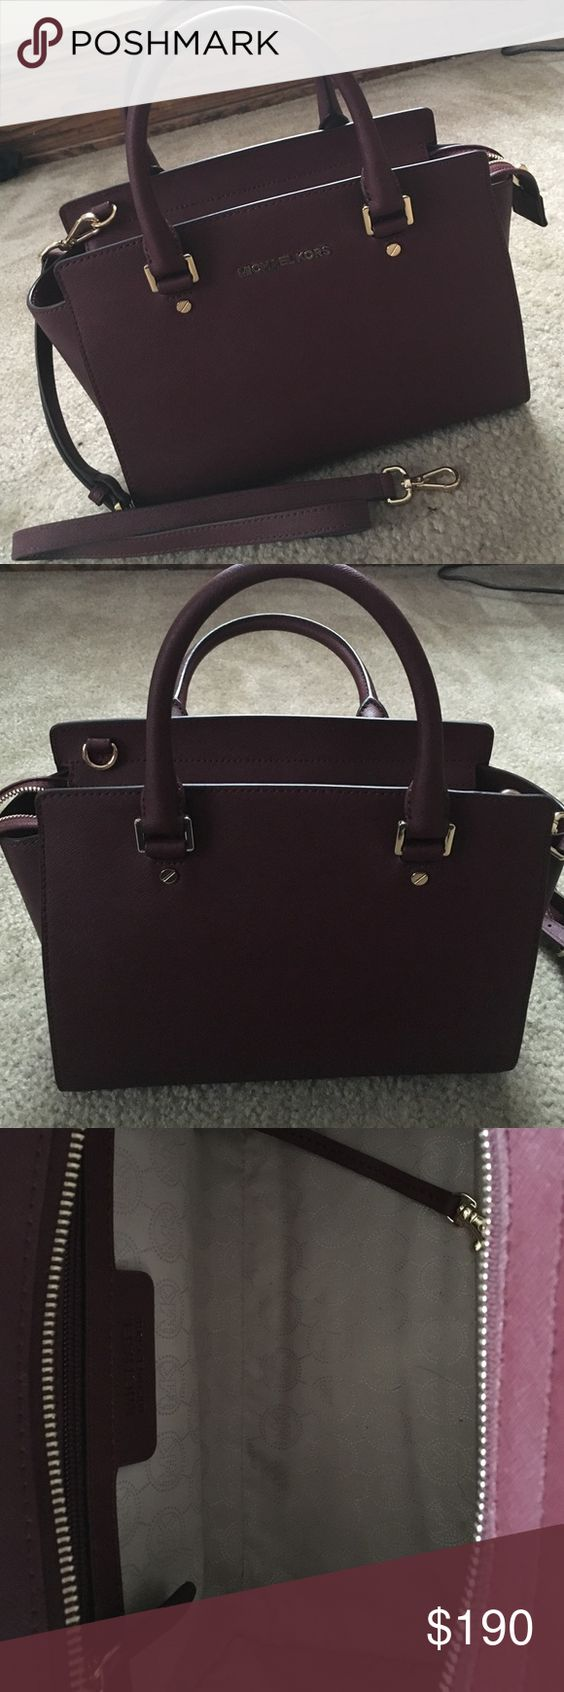 Medium Sized Michael Kors Burgundy Selma Satchel Fairly New, worn twice. Comes with dust bag. No marks or scratches on or inside the bag. Michael Kors Bags Satchels